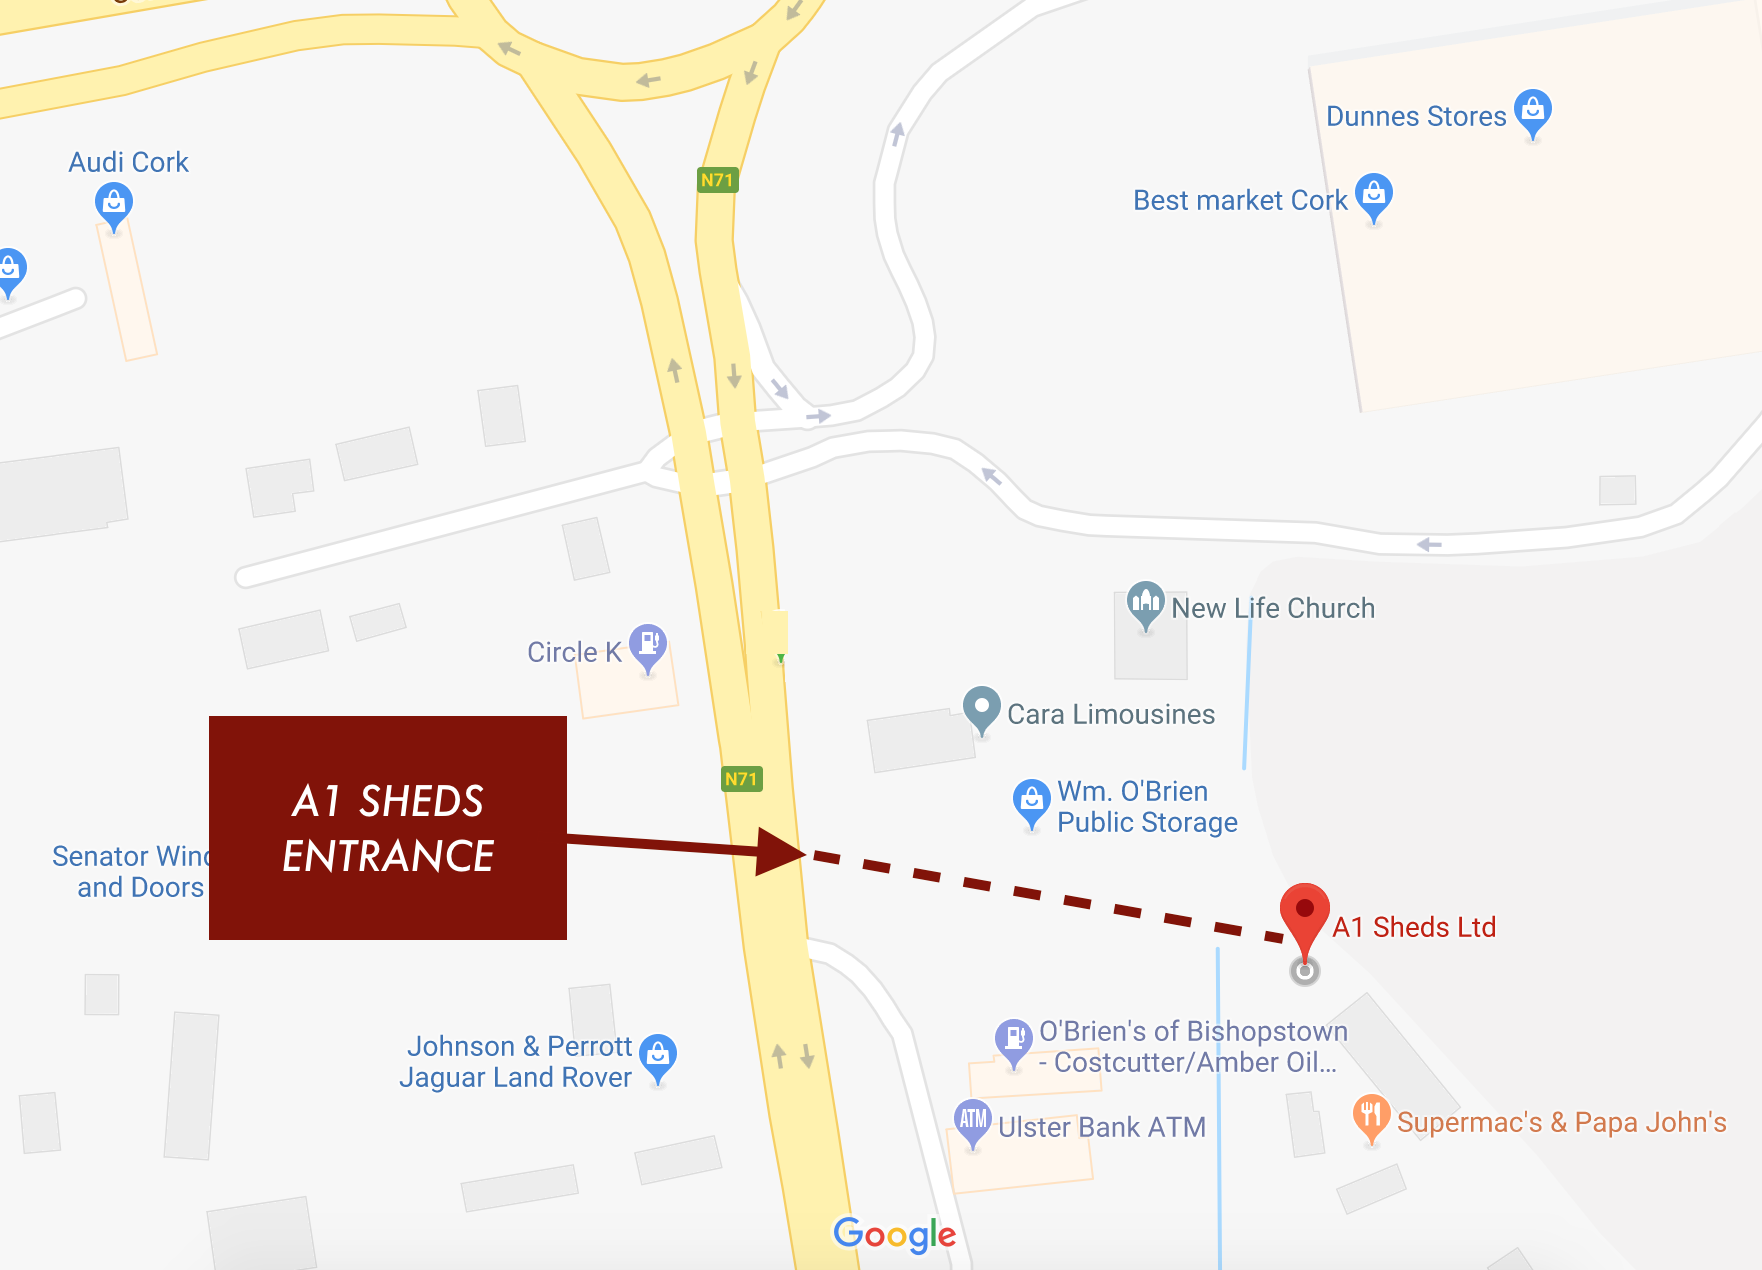 A1-Sheds-Location-Cork-Showroom-Map.png